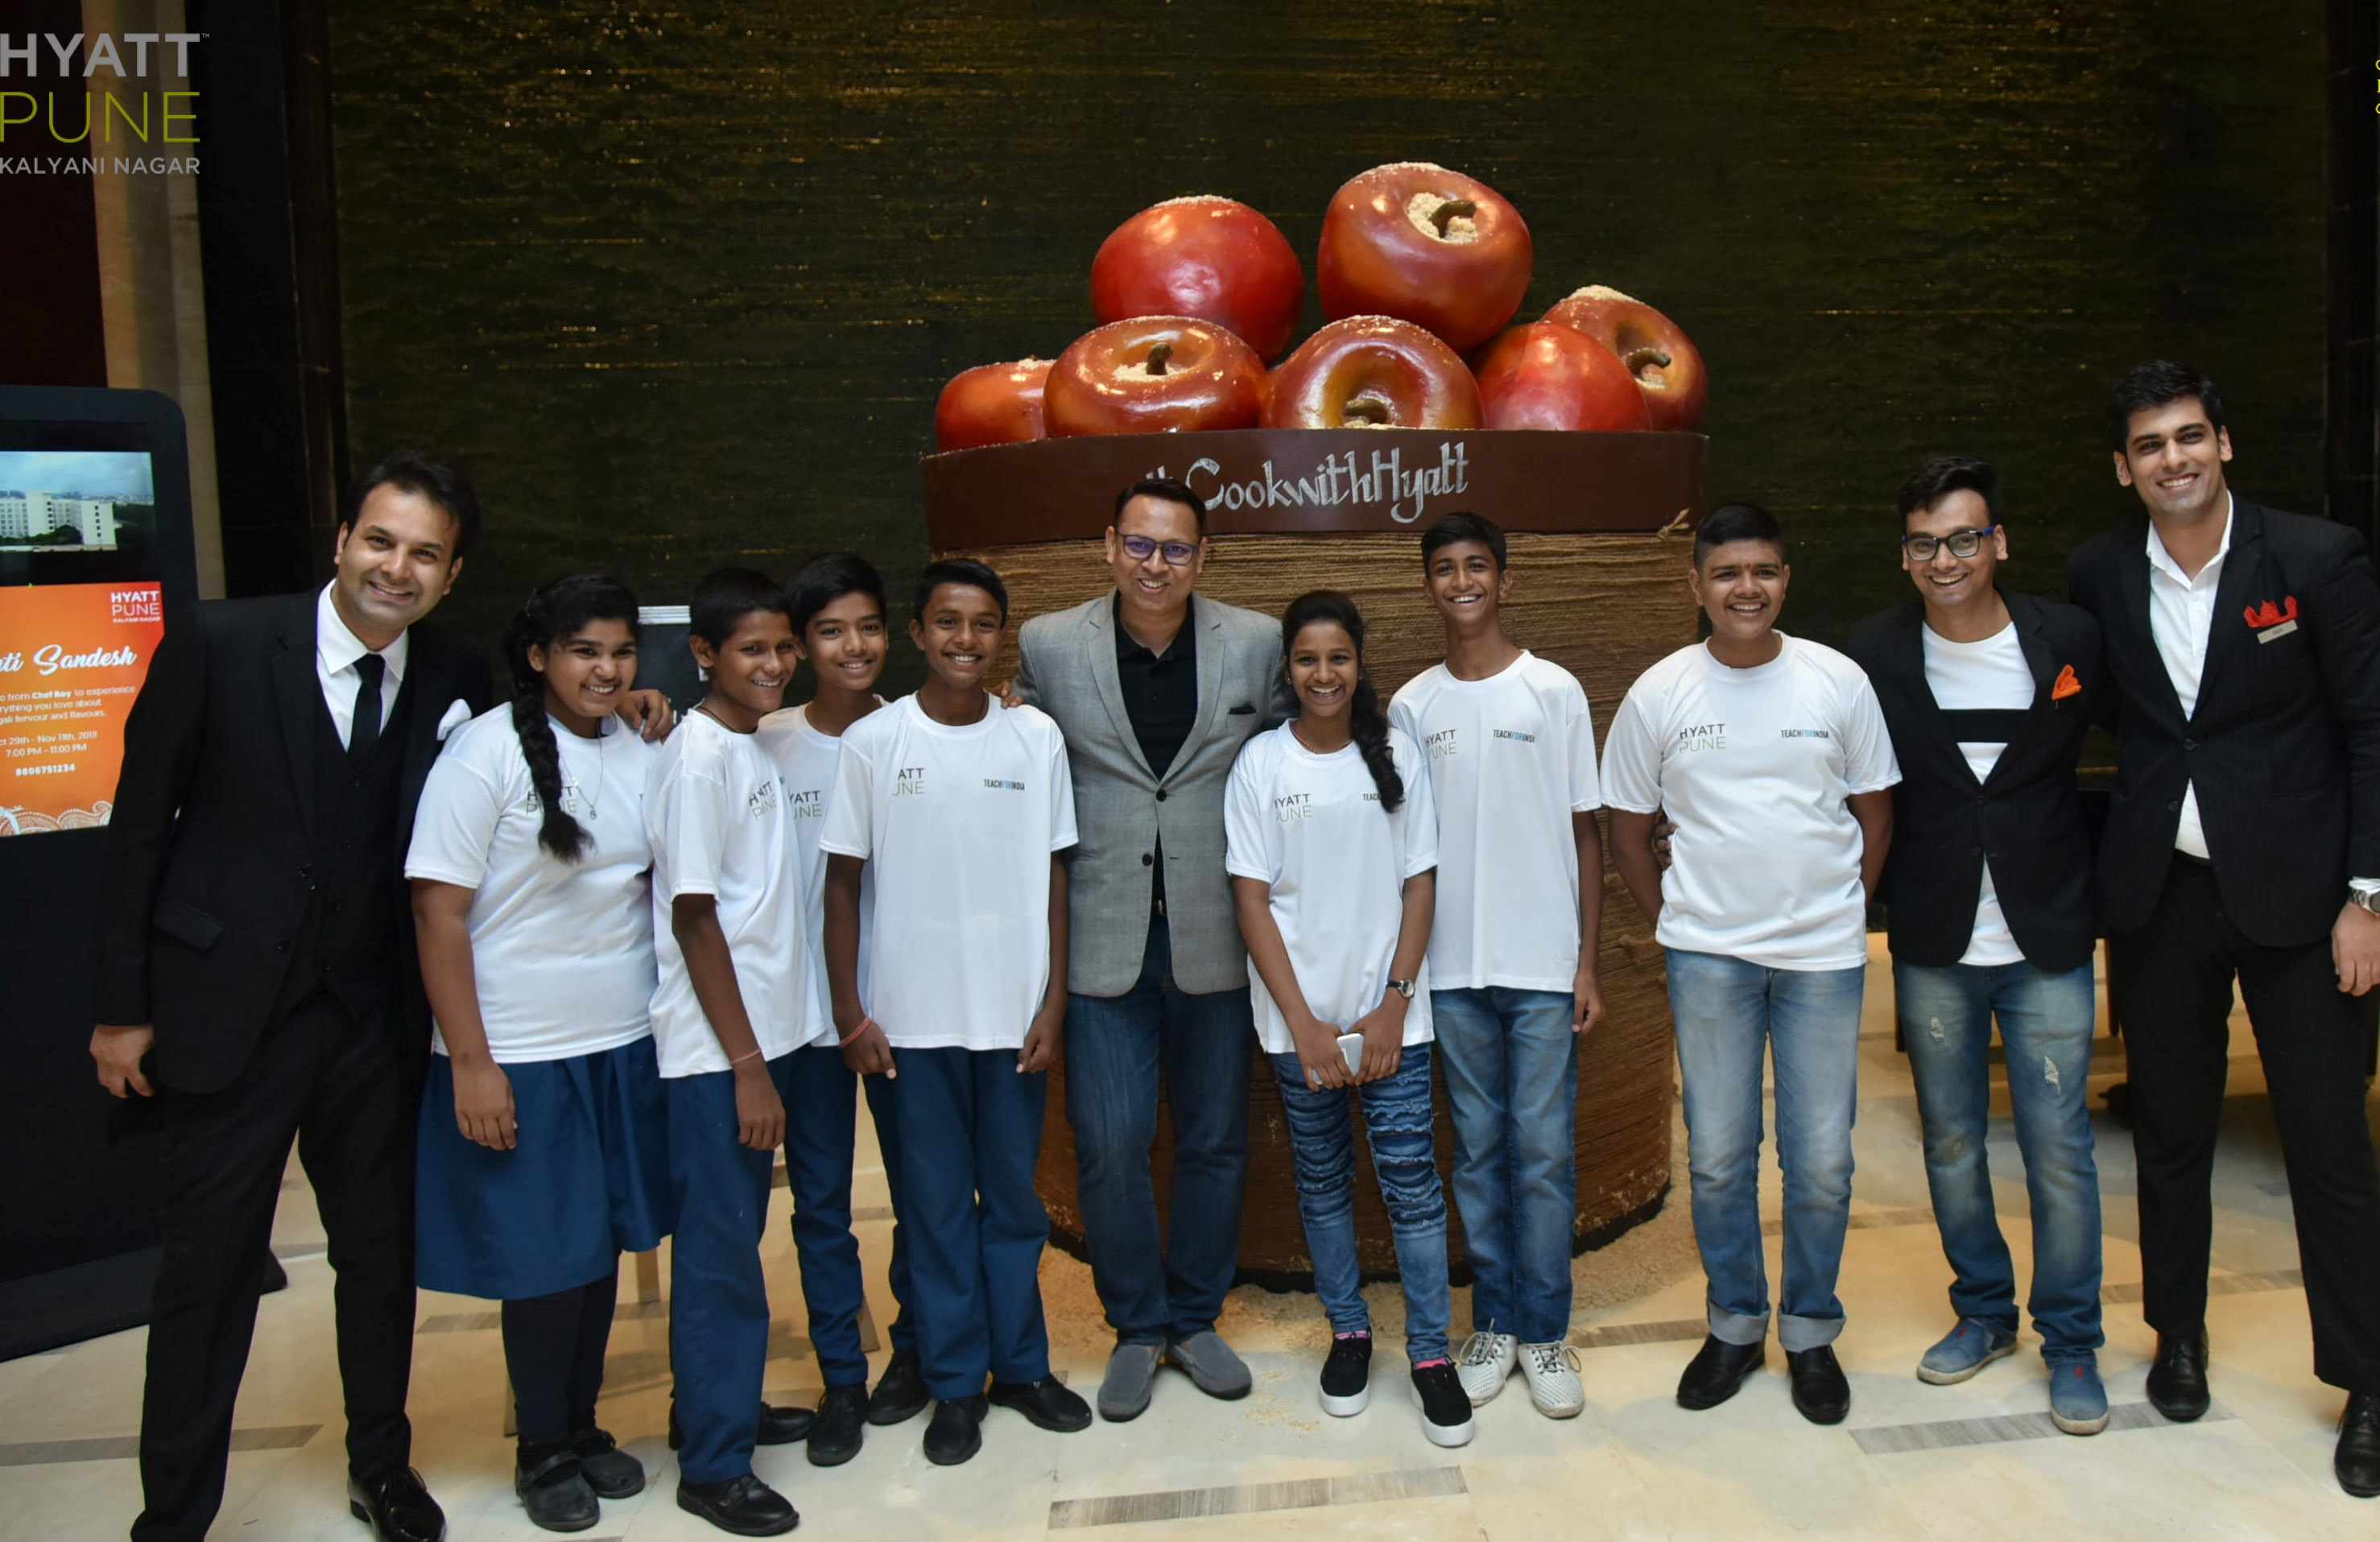 Special Participants from Teach For India at Hyatt Culinary Challenge Pune with Mr. Sumit Kumar, General Manager - Hyatt Pune